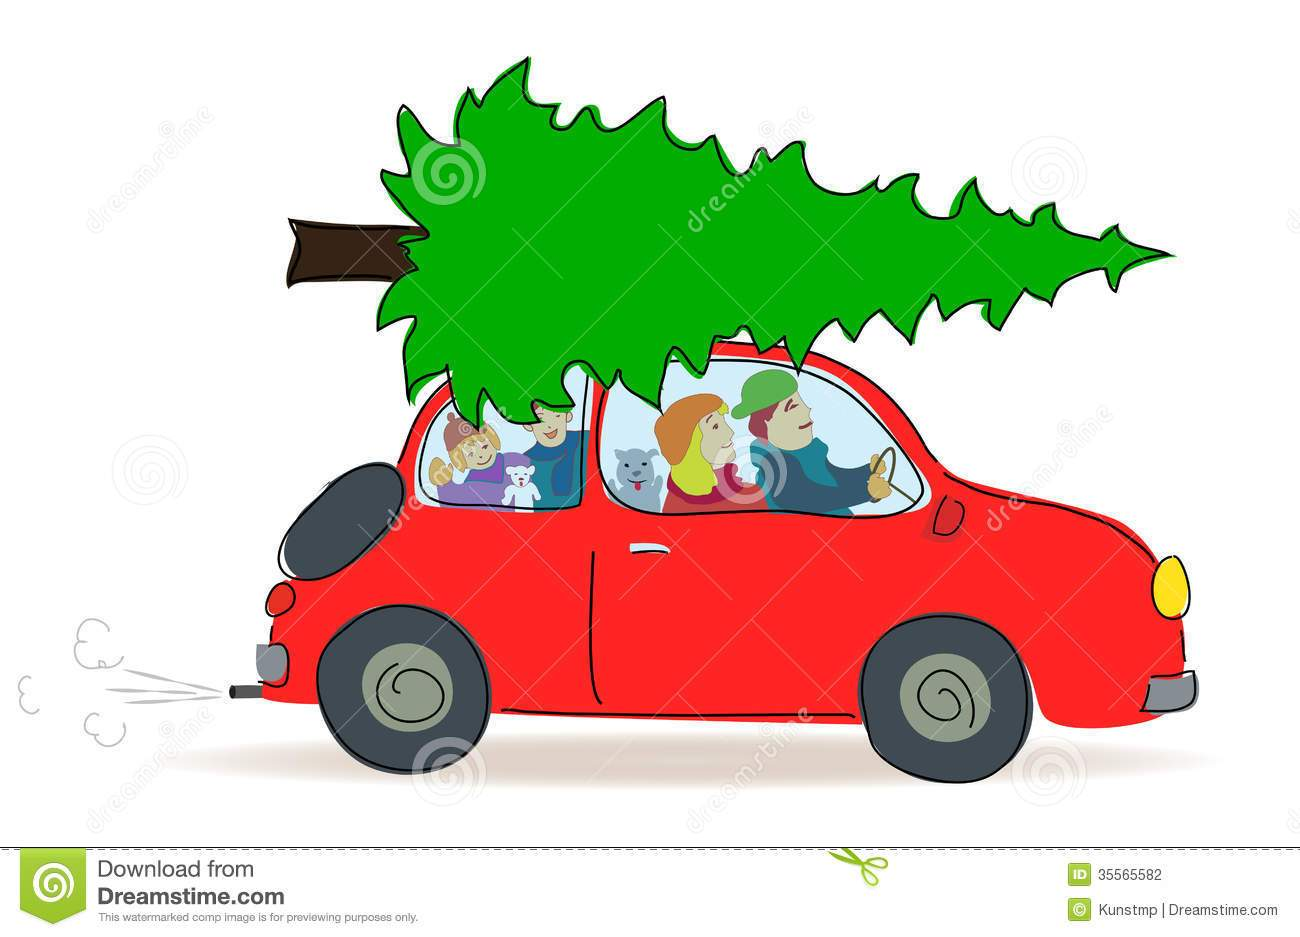 Christmas tree on car clipart 7 » Clipart Portal.